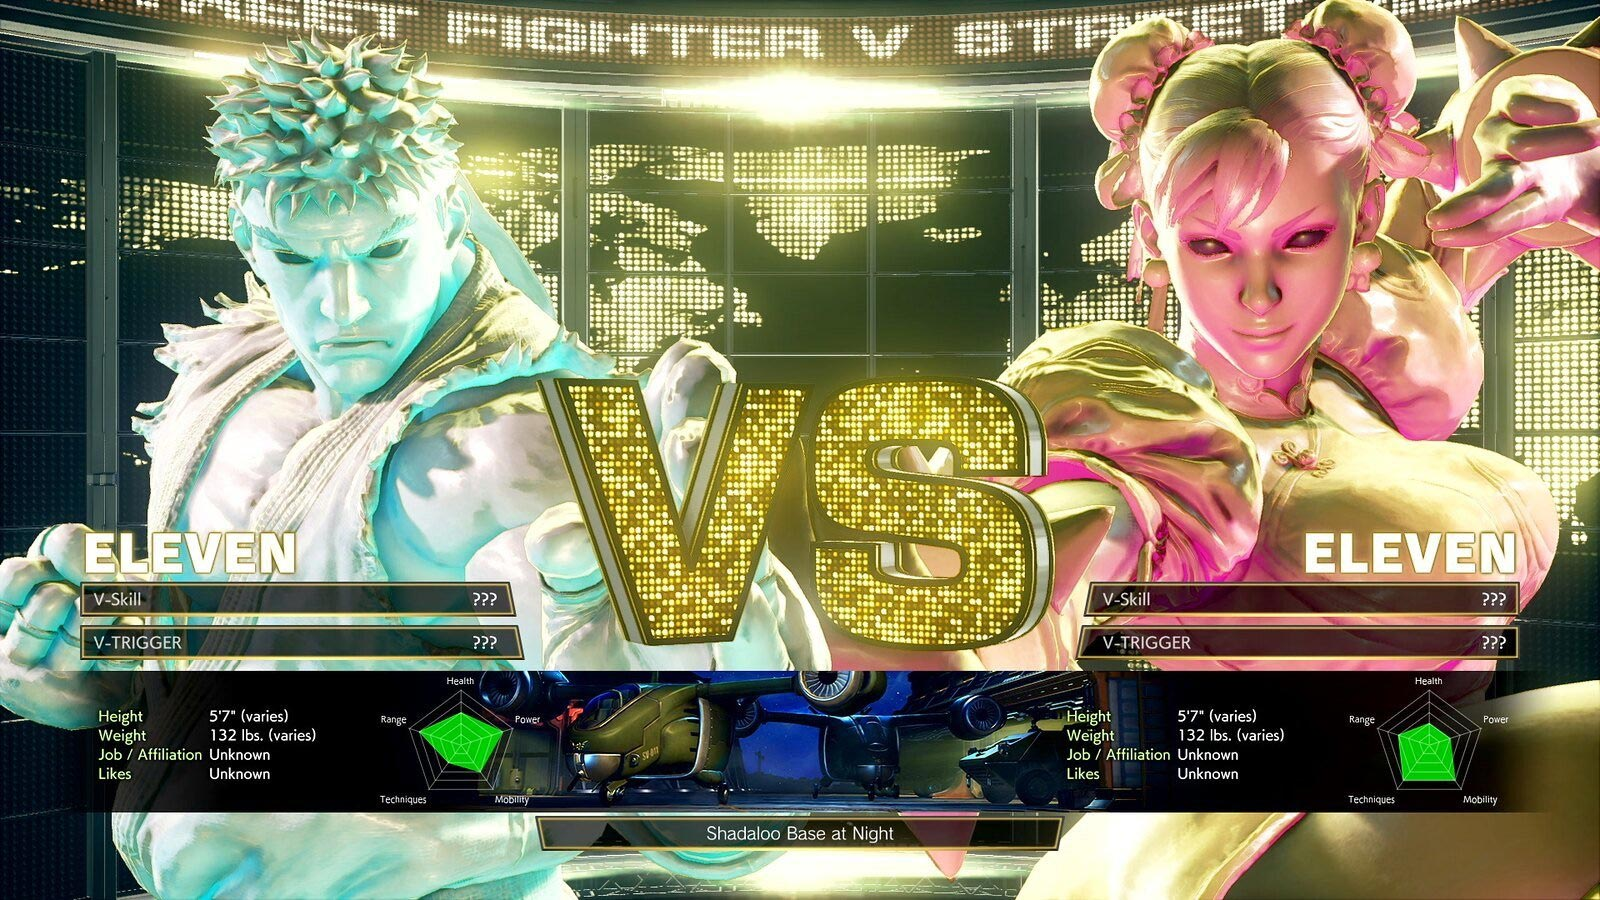 Street Fighter 5 Season 5 Eleven and DLC purchase options 3 out of 5 image gallery